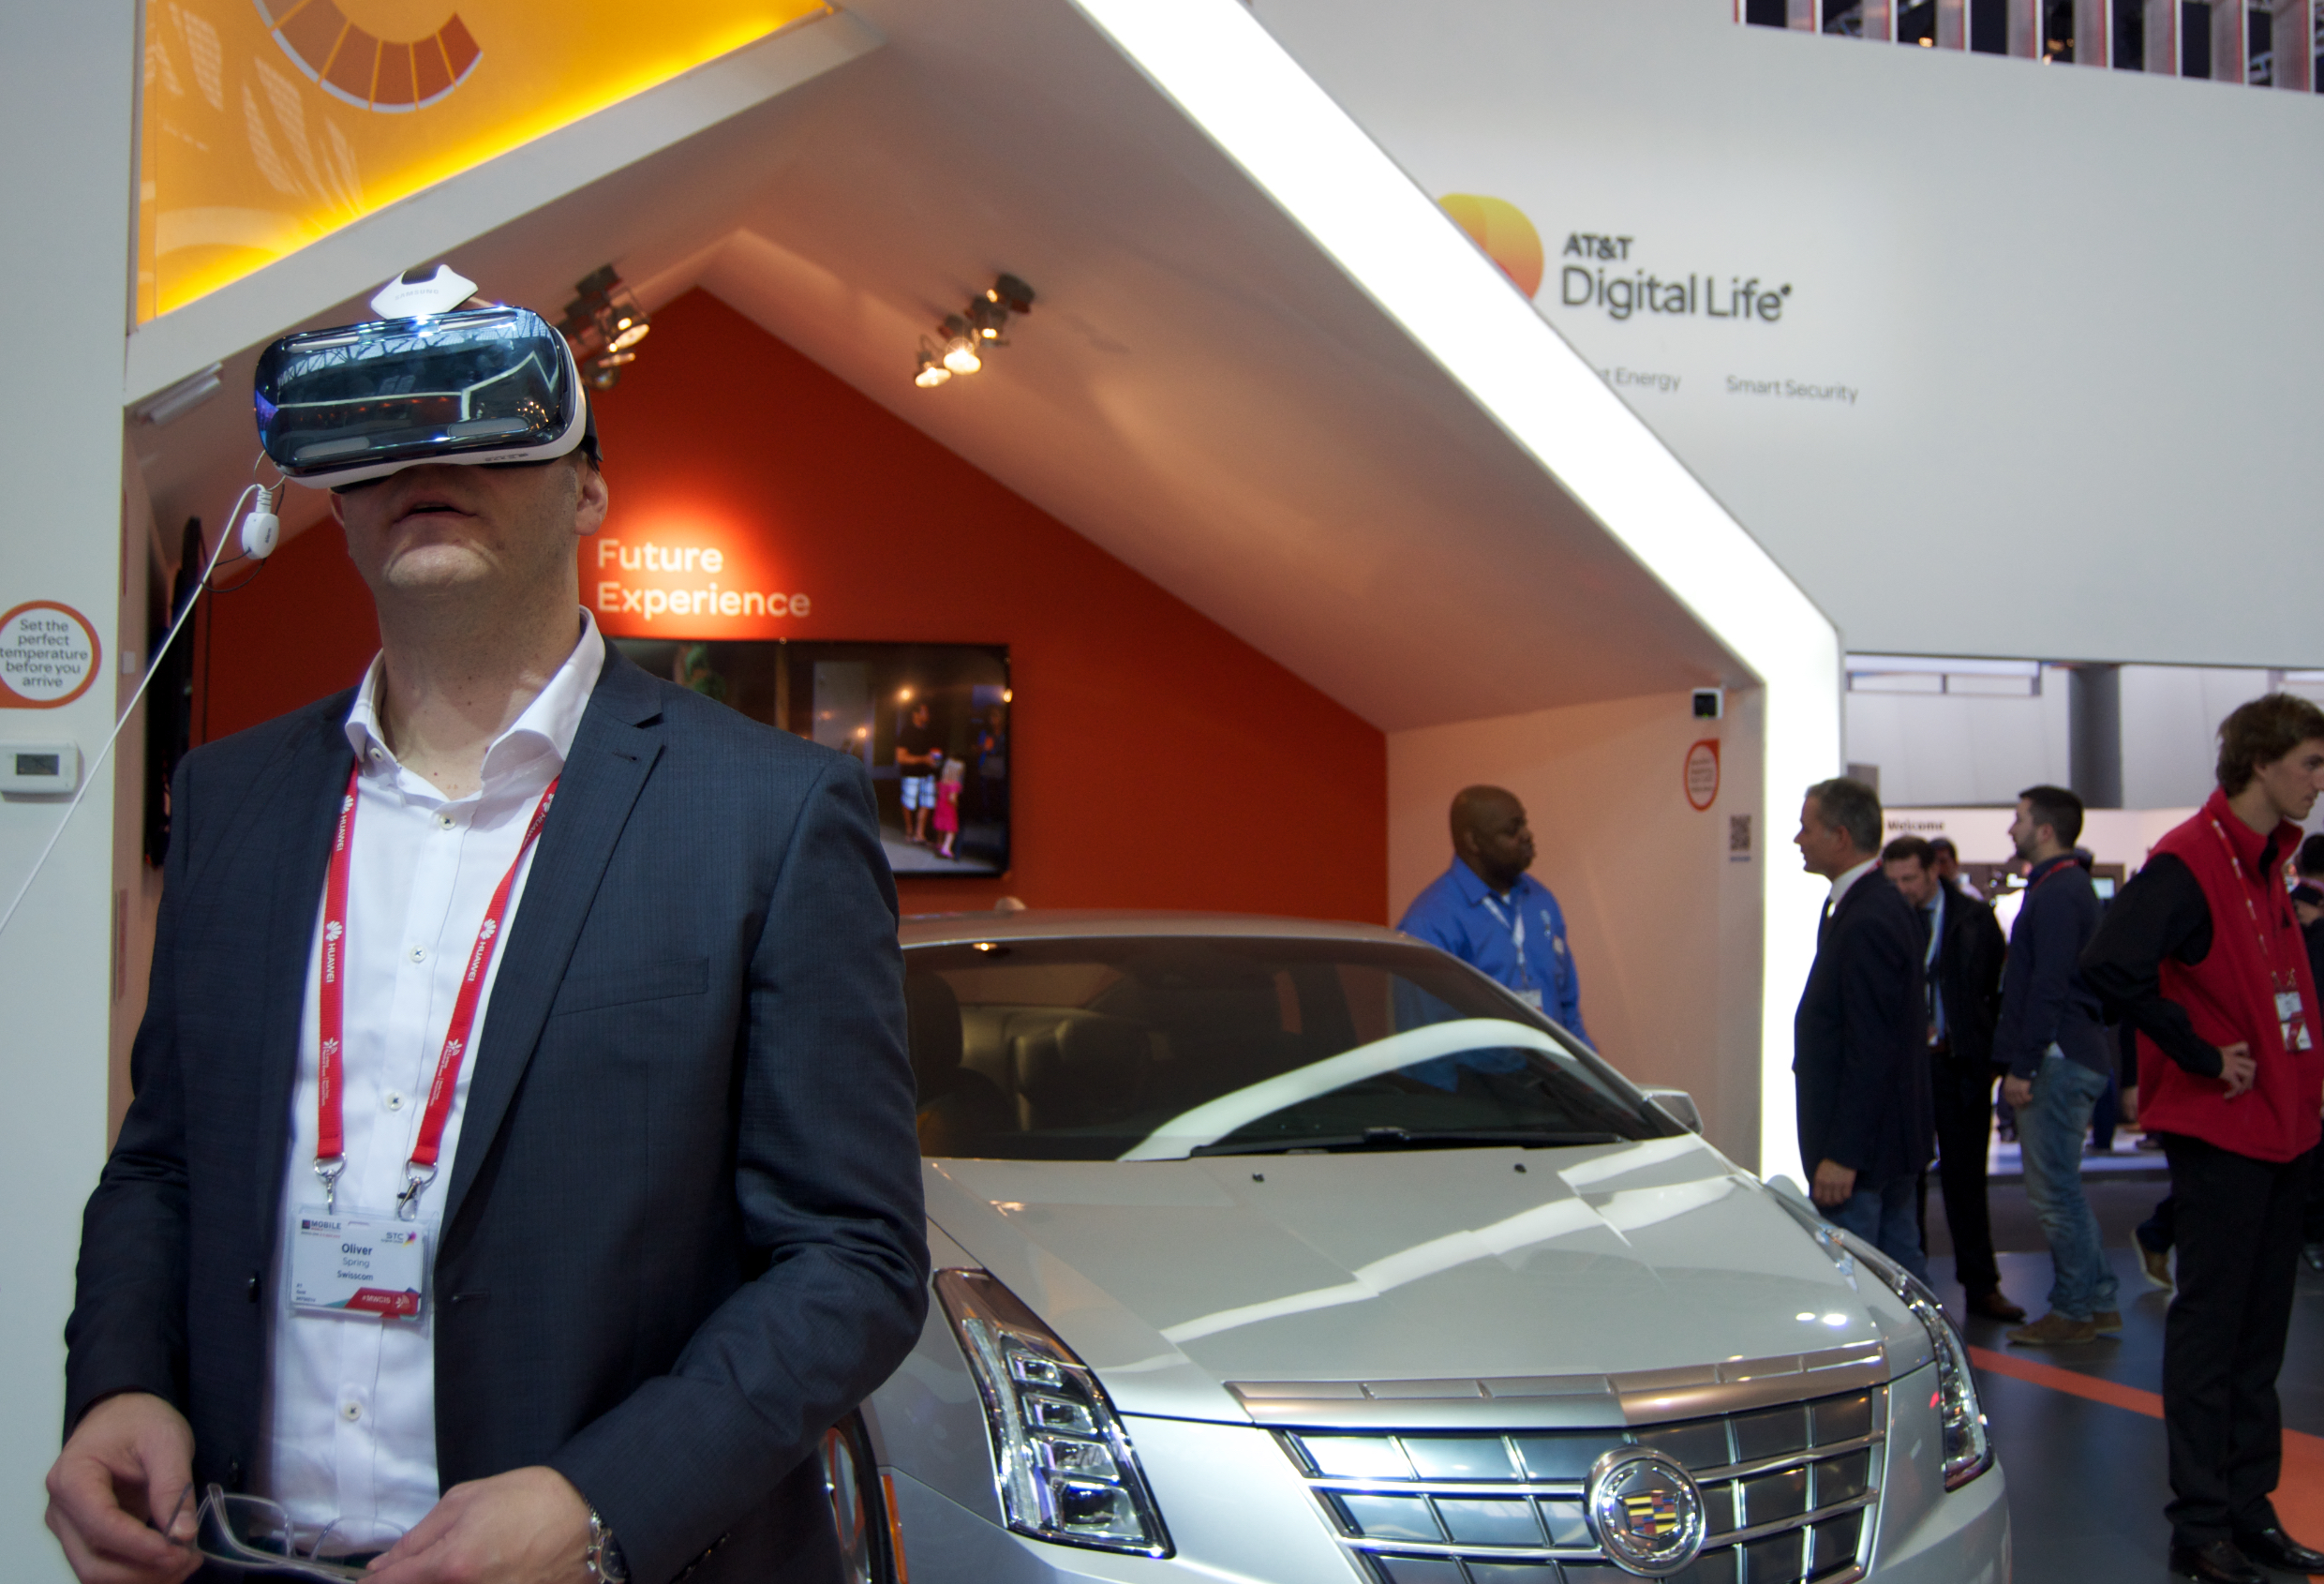 Virtual reality headsets were among the launch products on show at Mobile World Congress this week